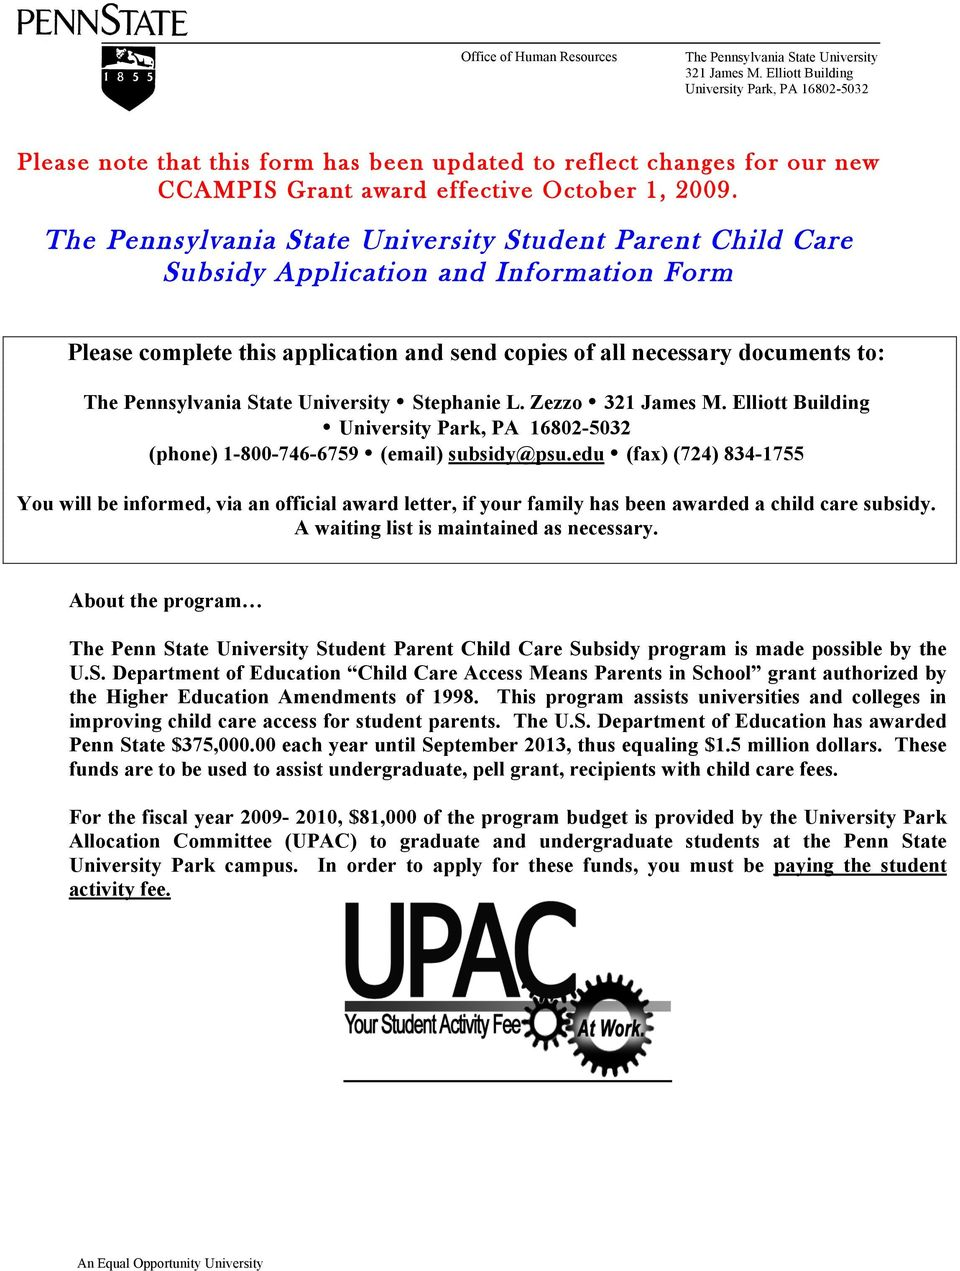 The Pennsylvania State University Student Parent Child Care Subsidy Application and Information Form Please complete this application and send copies of all necessary documents to: The Pennsylvania